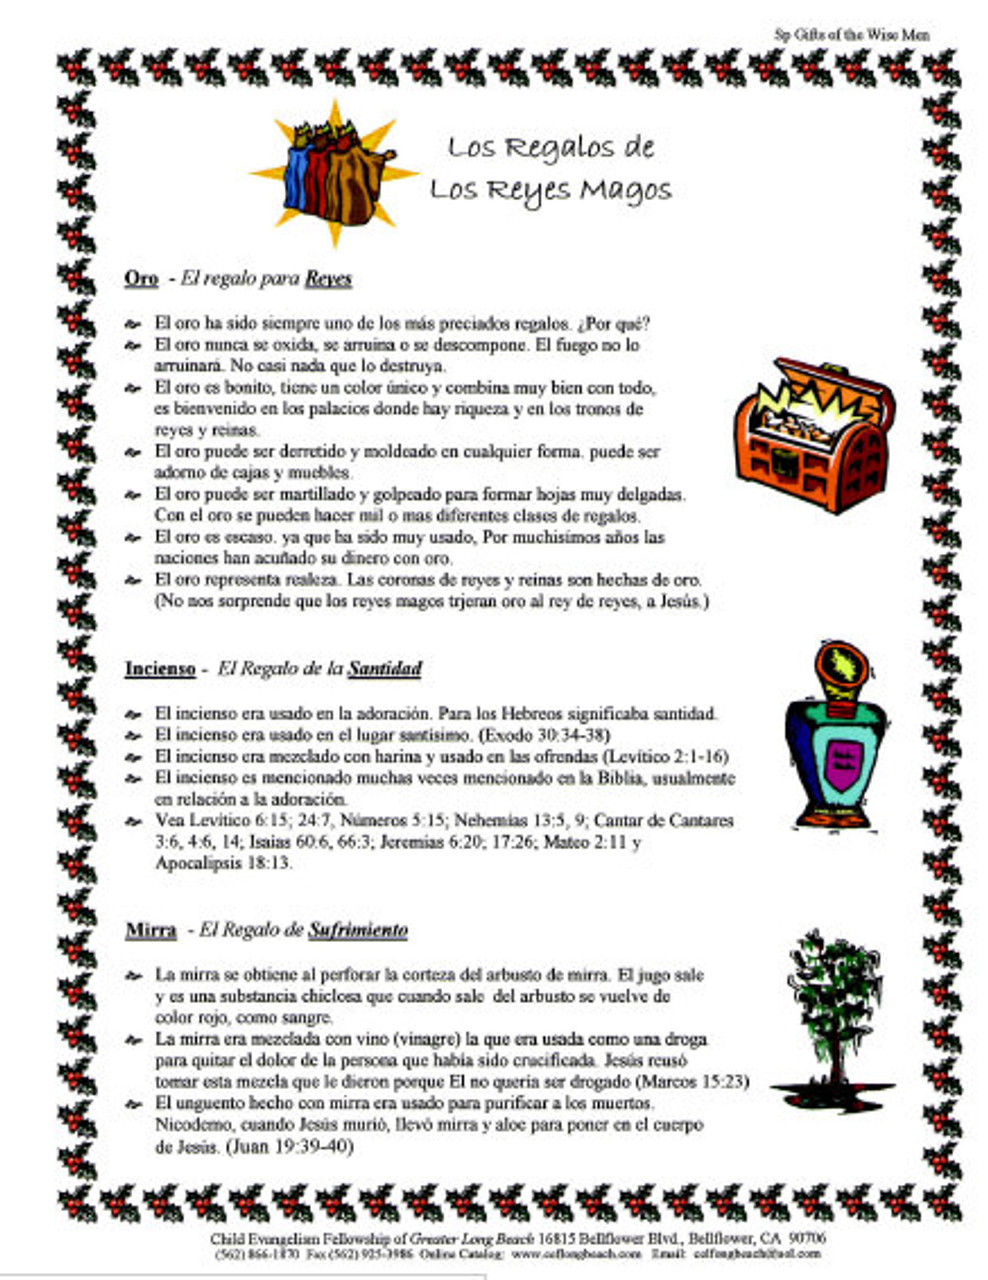 Los Regalos de Los Reyes Magos (Gifts of The Wisemen)